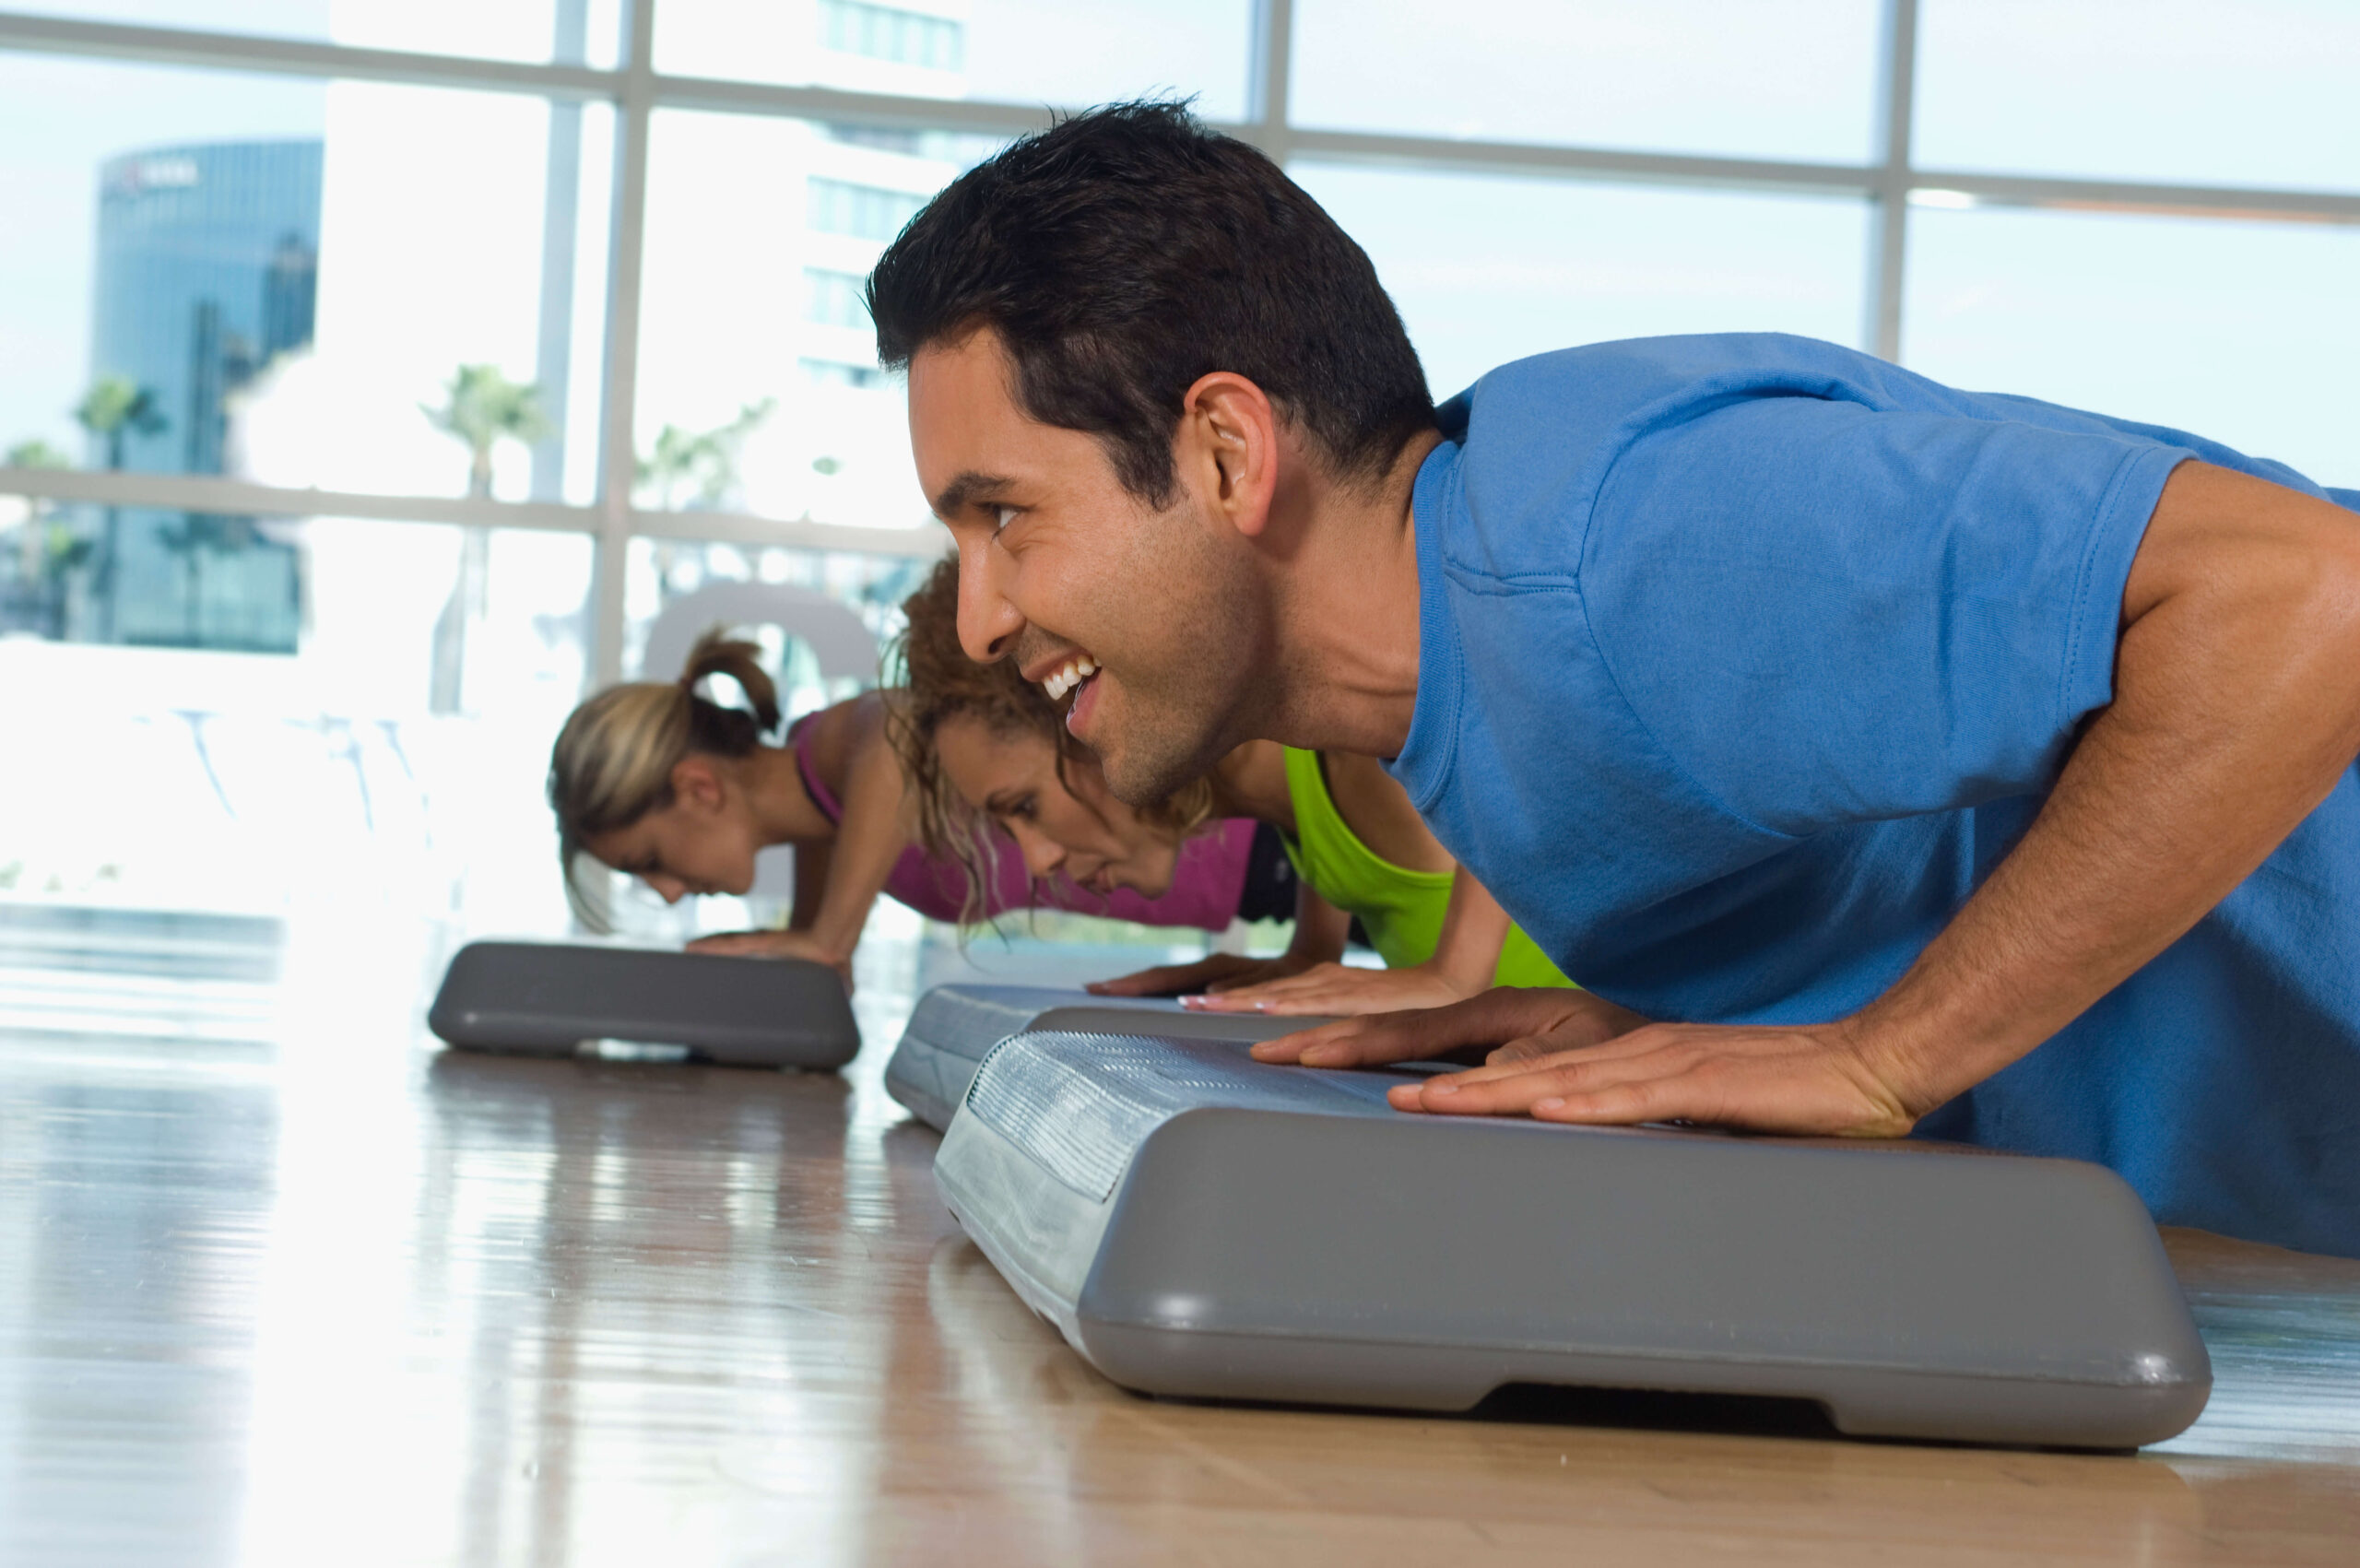 What Component of Physical Fitness Is Push-Ups